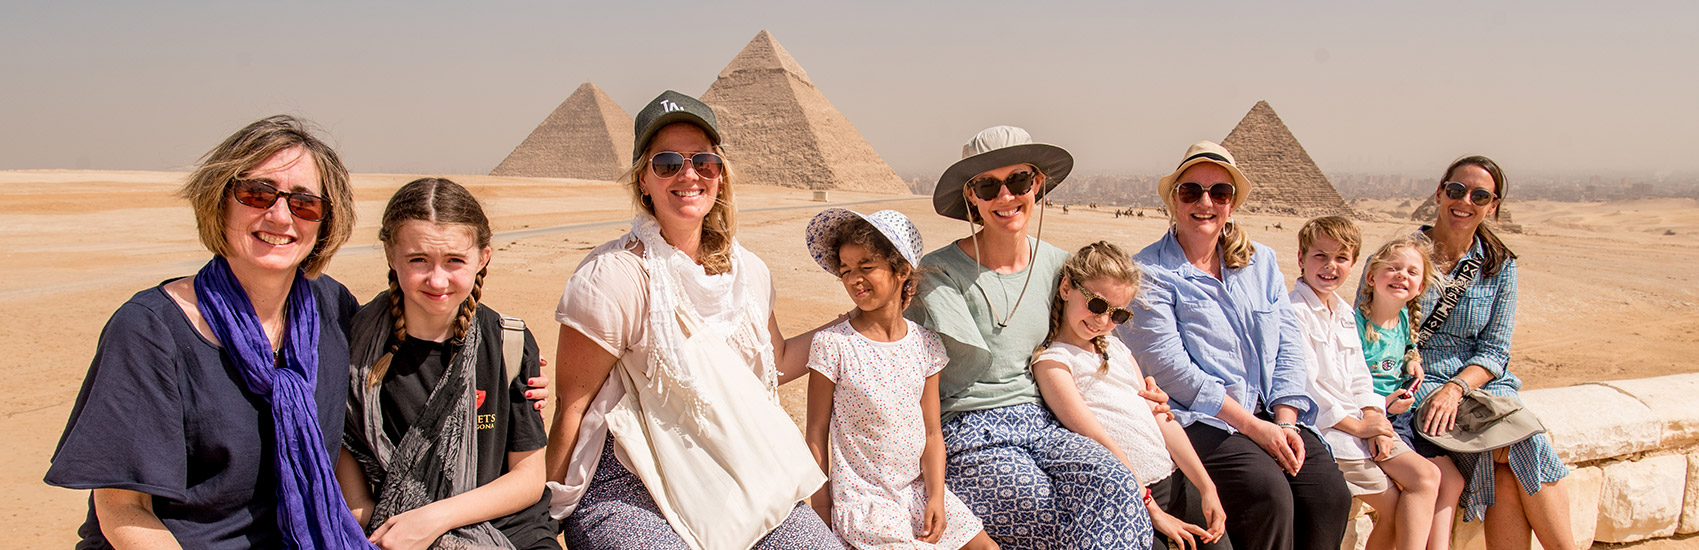 Family Adventures With Intrepid Travel